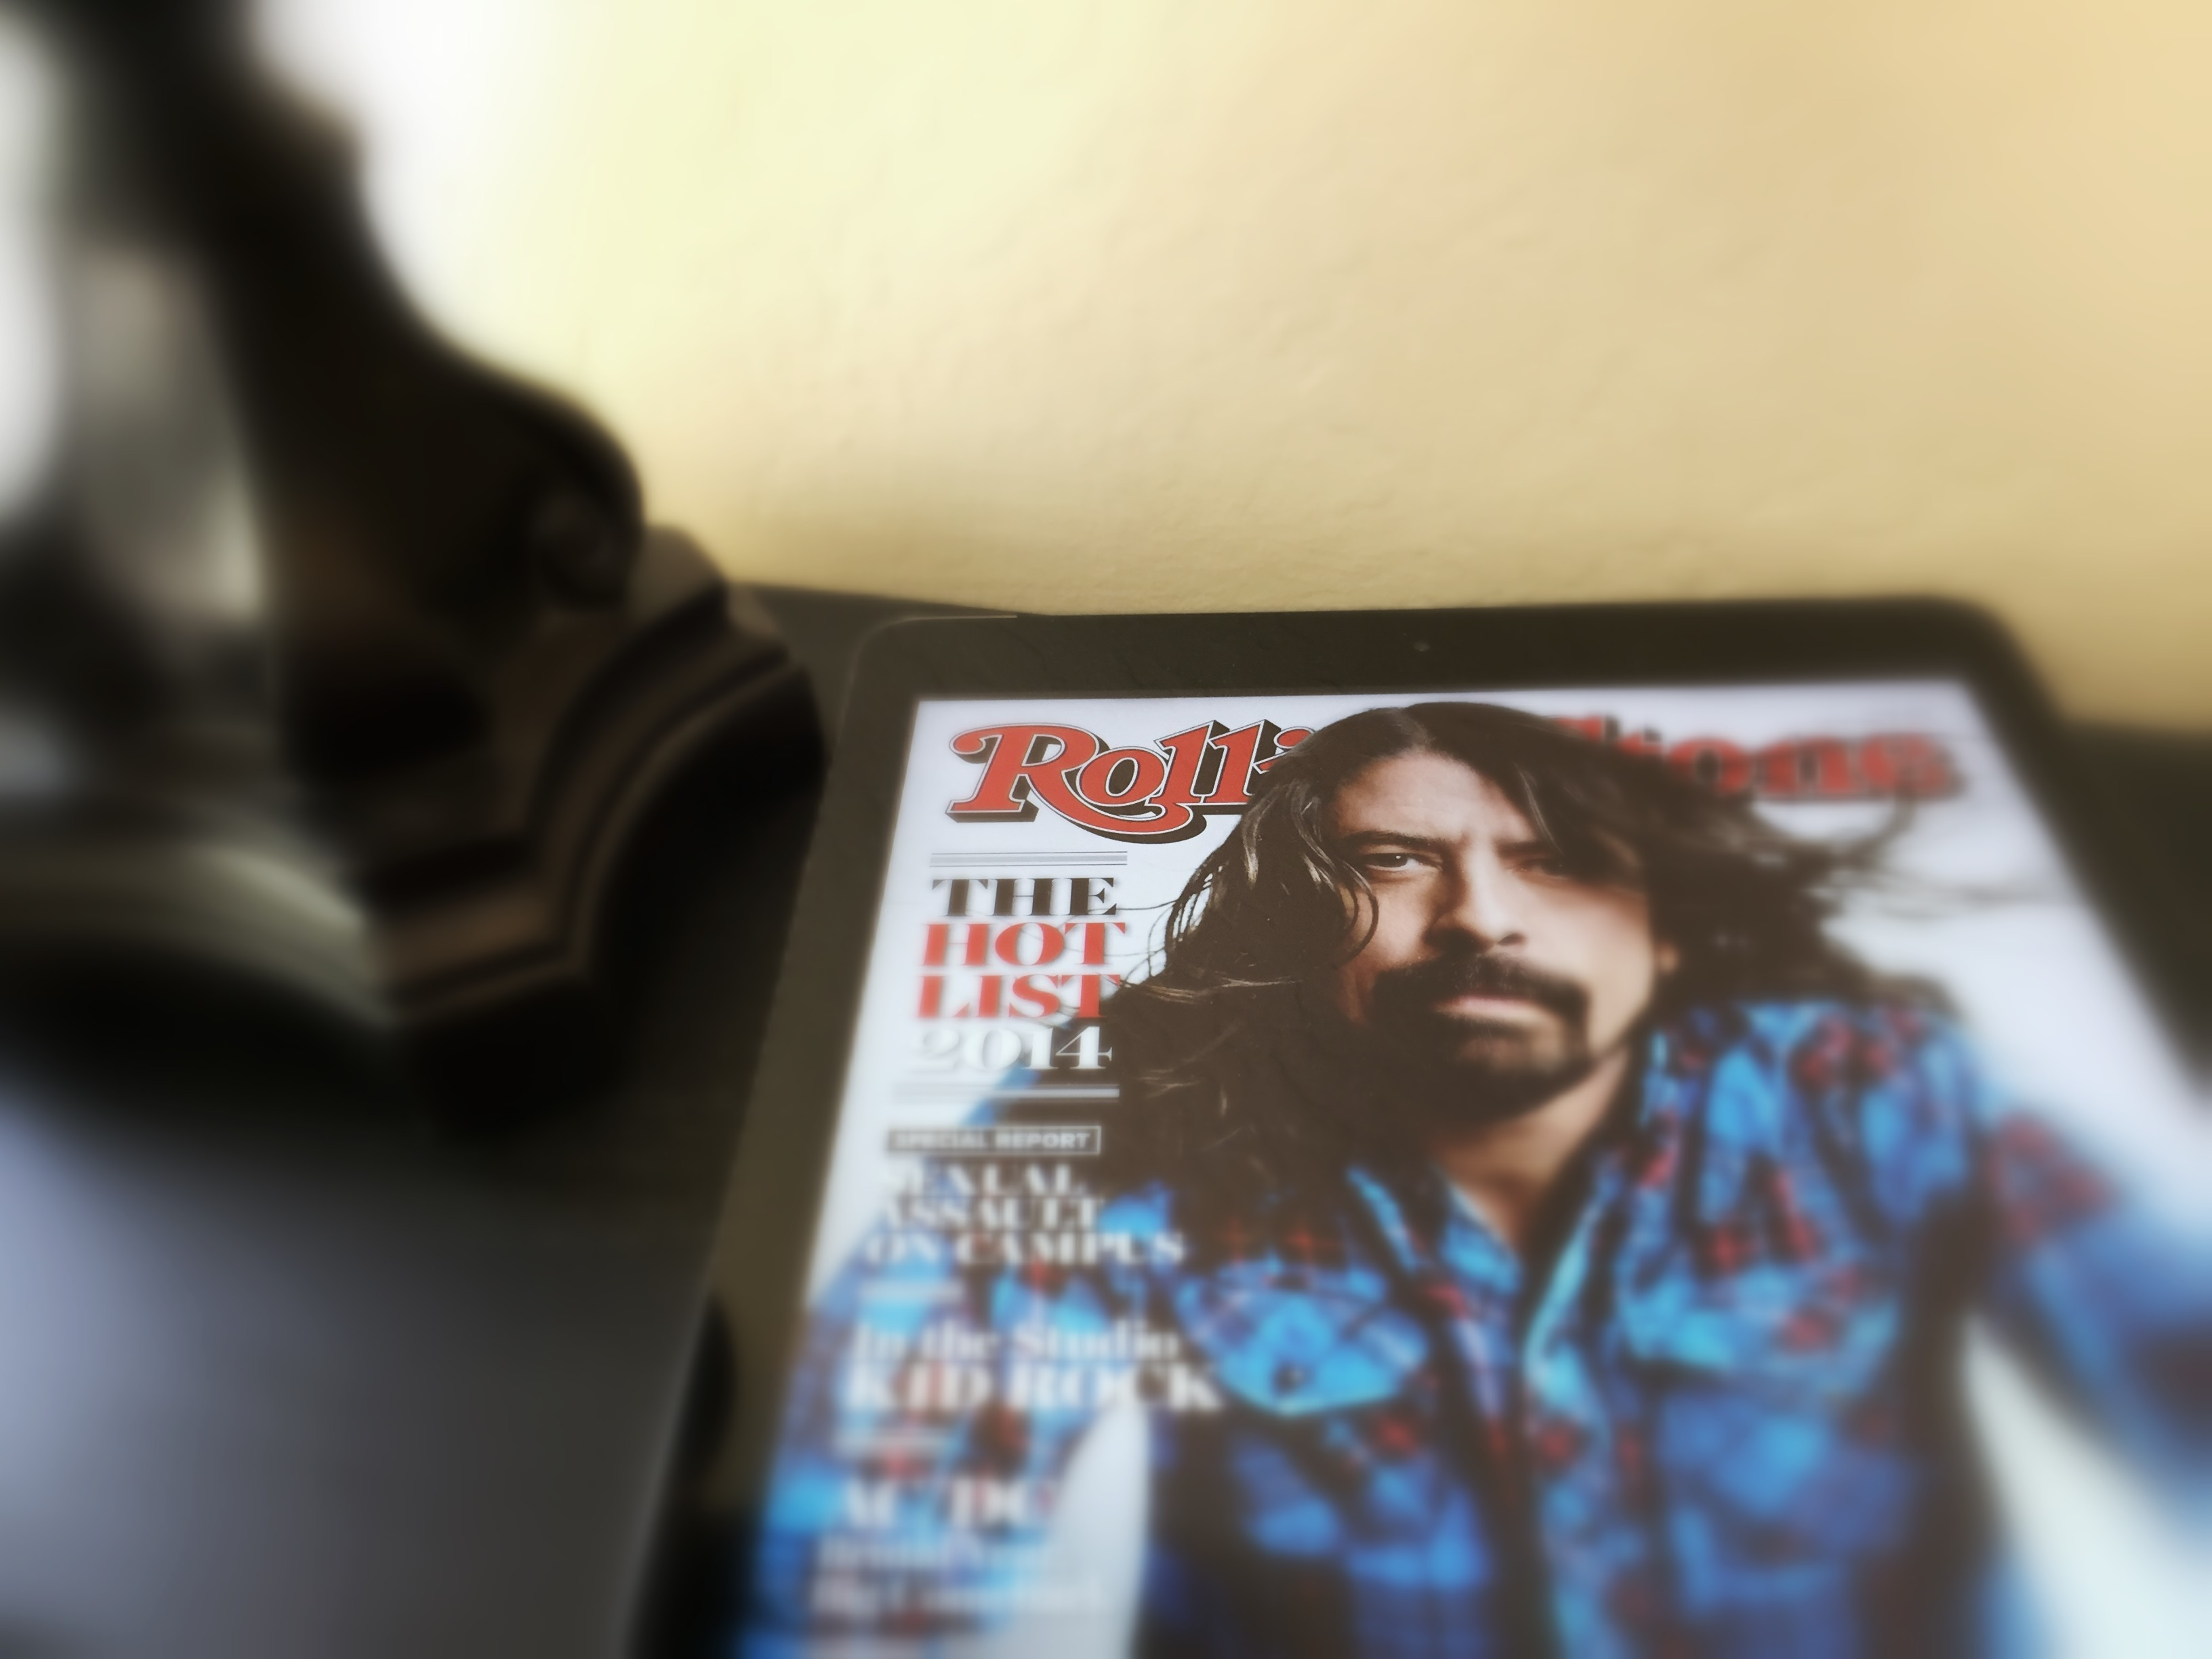 Rolling Stone on tablet